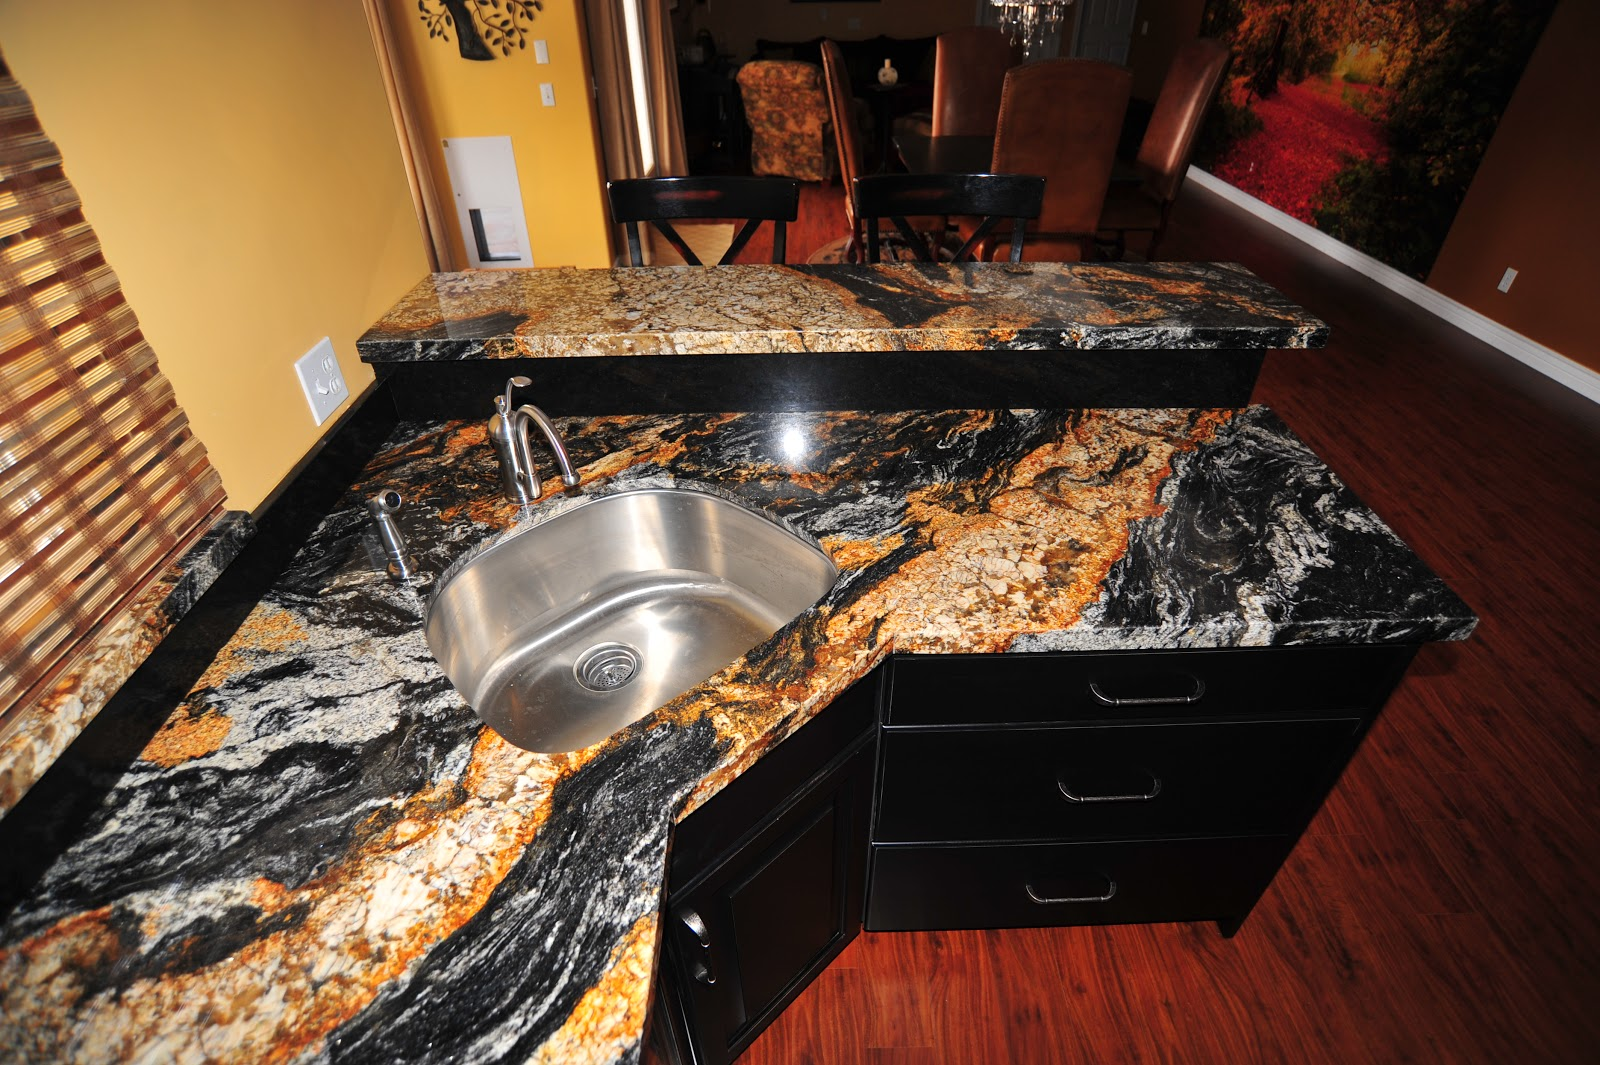 Worksheet Kitchen Volcano affordable custom cabinets and granite countertops cabinet painted black with a light distress the is 2cm volcano mitered edge absolute backsplash